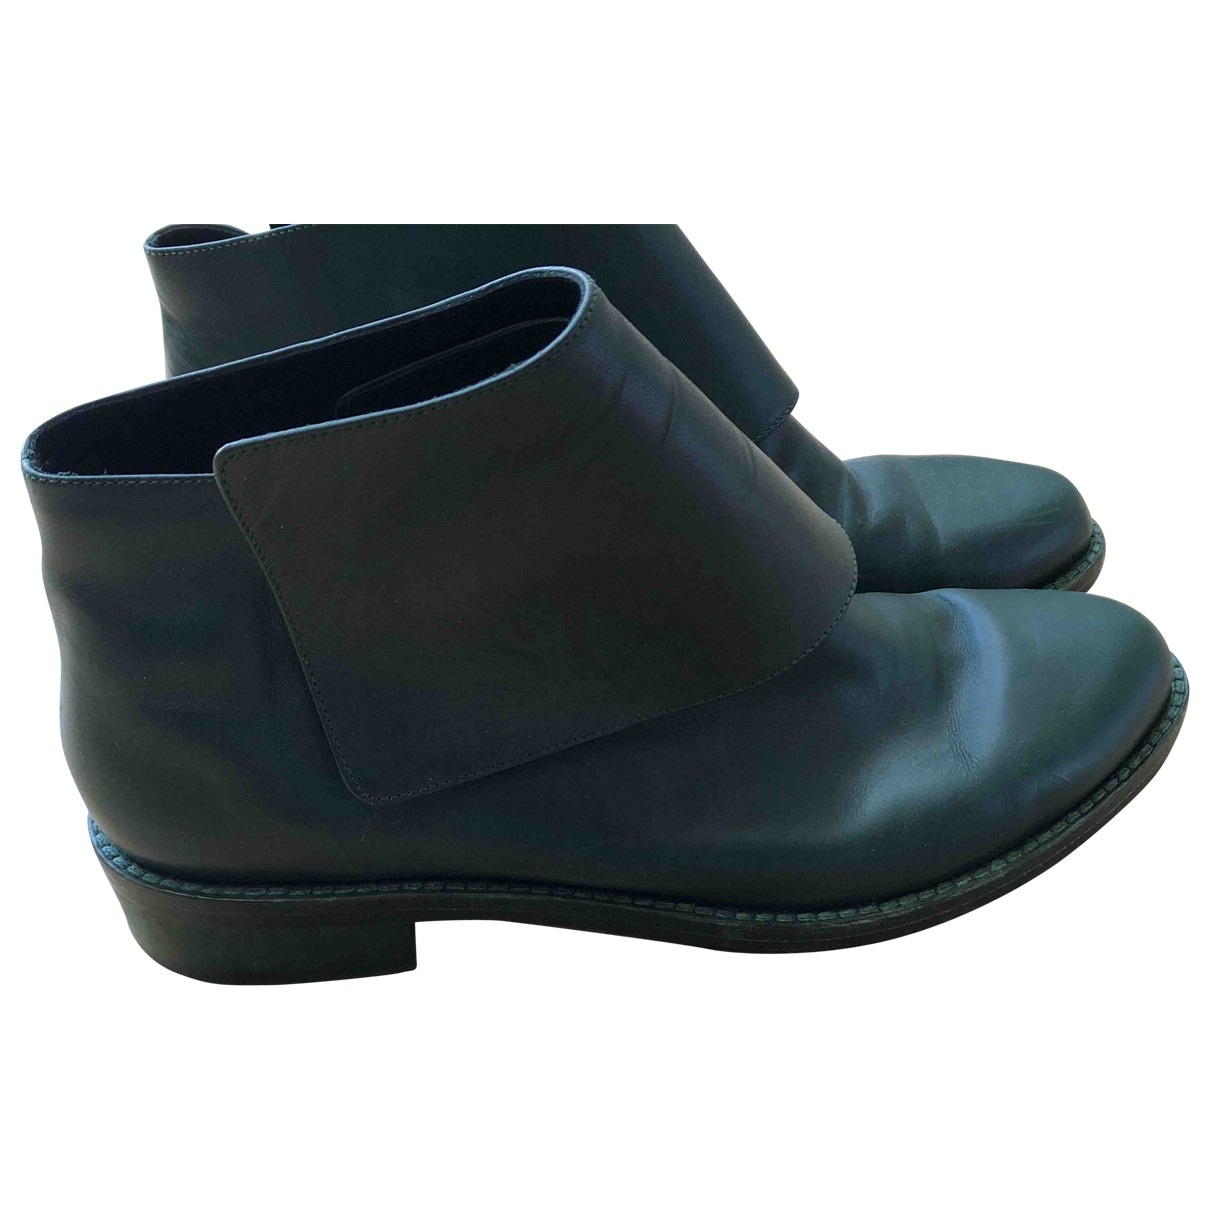 & Stories \N Green Leather Boots for Women 41 EU